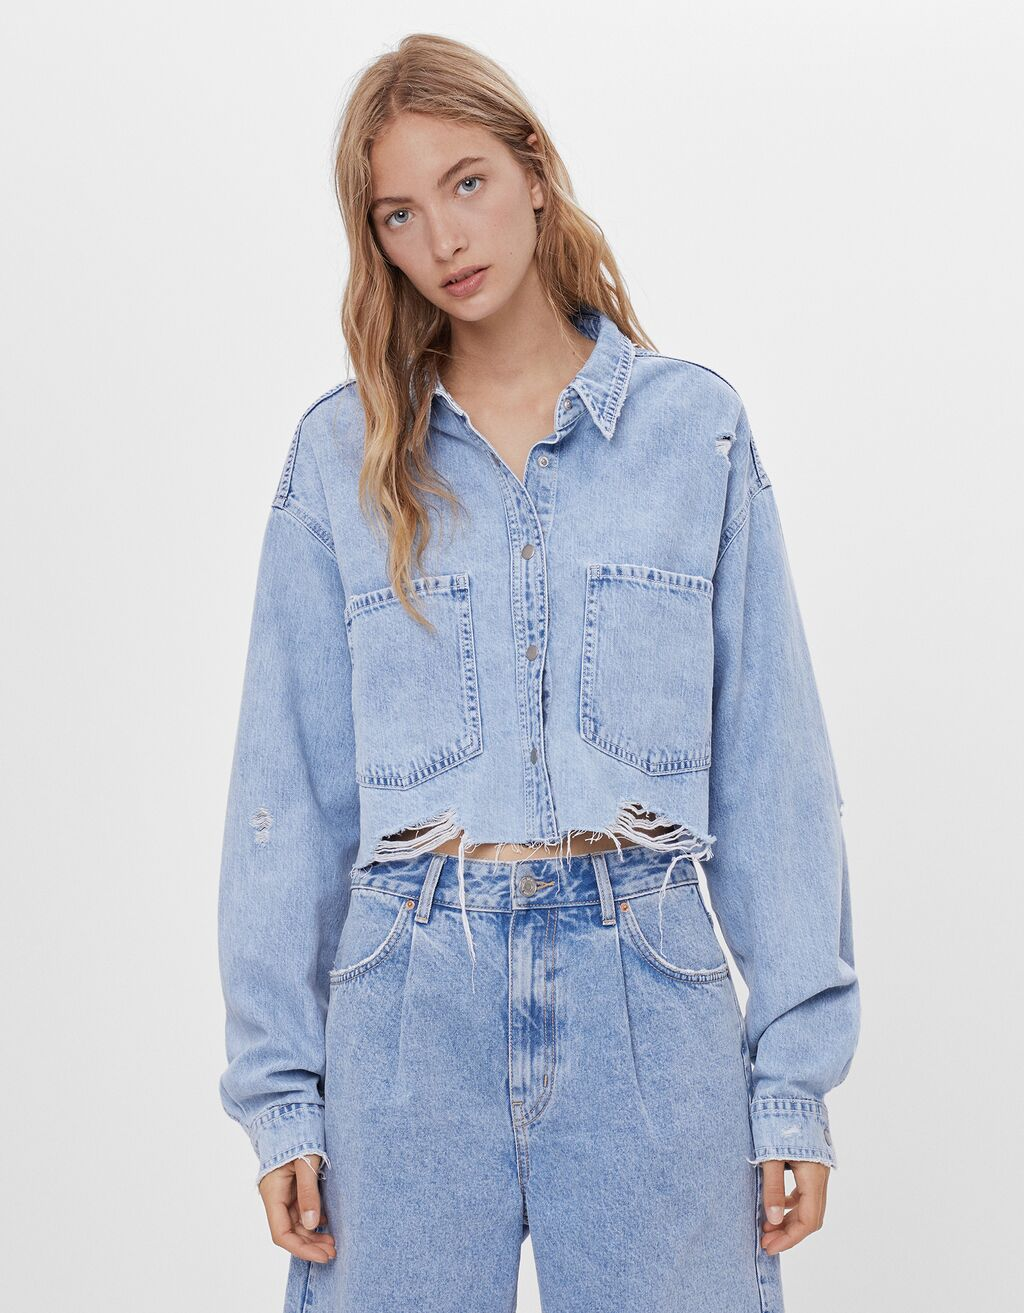 Surchemise cropped denim